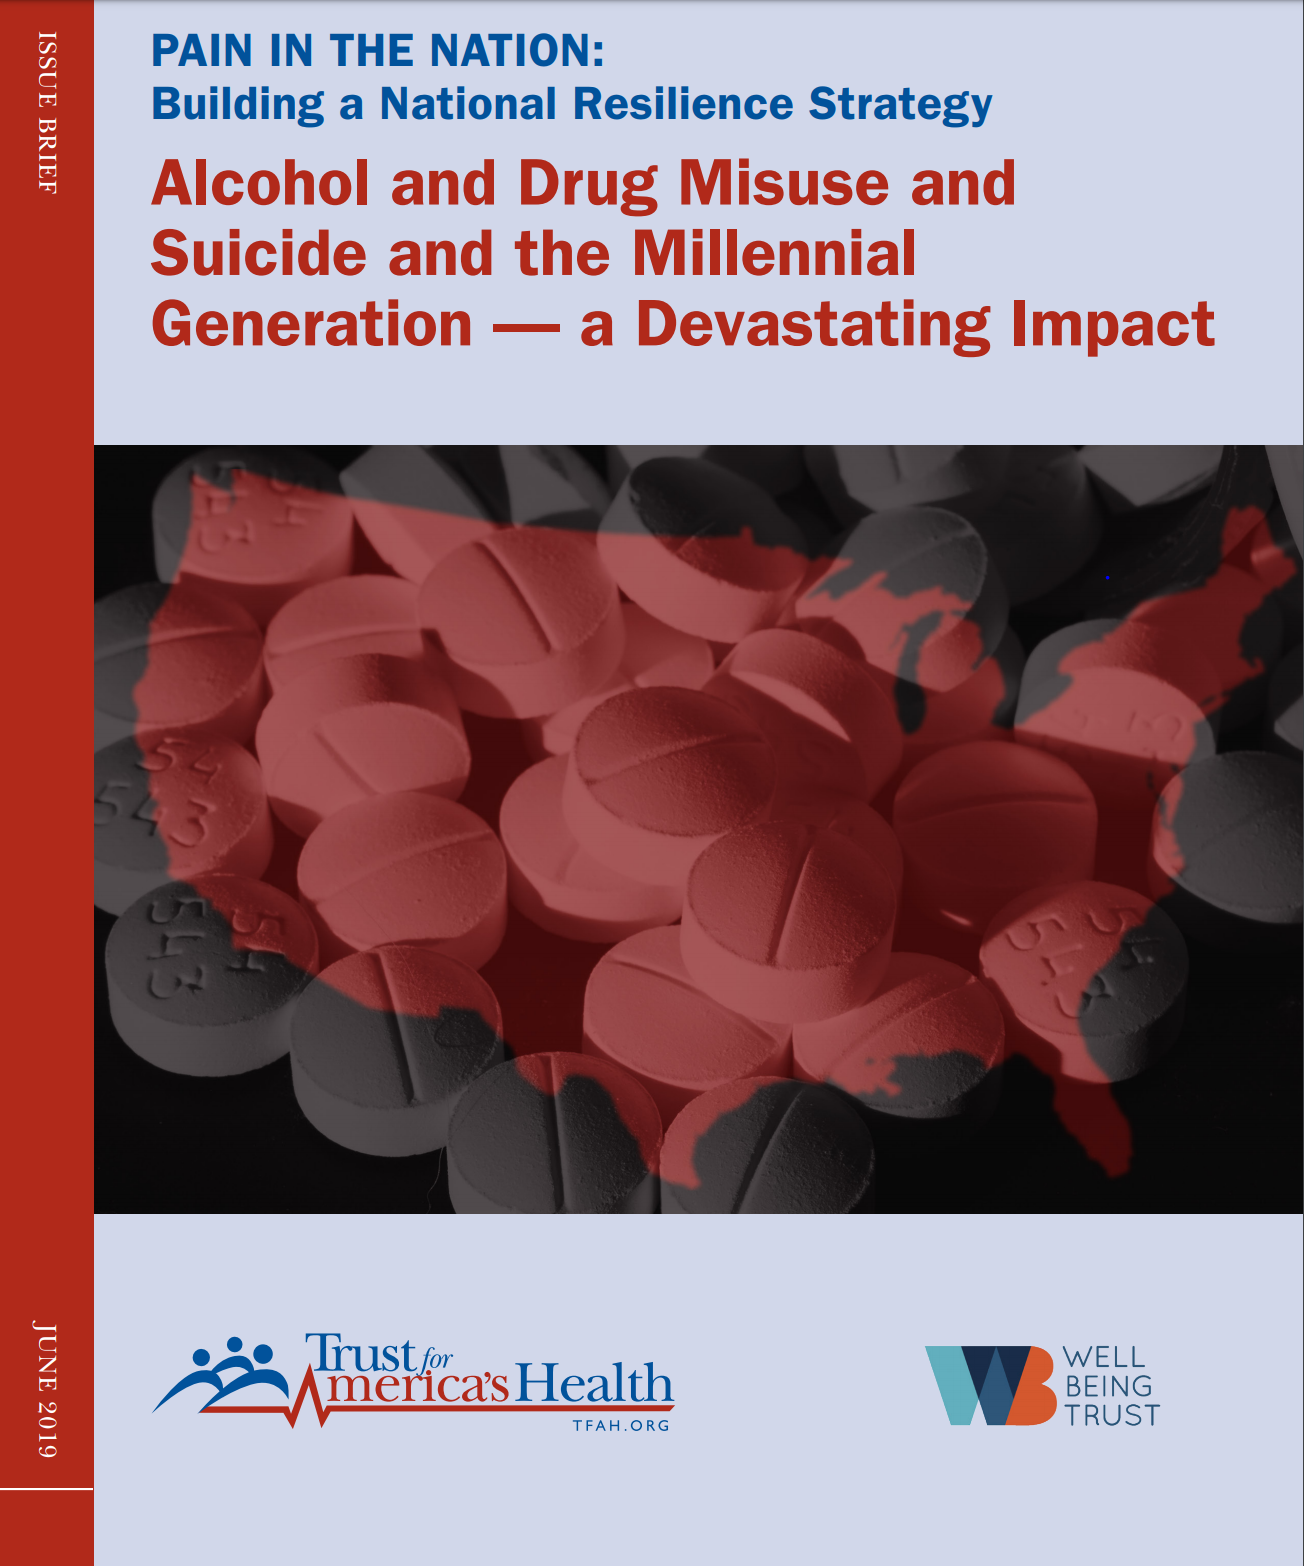 Alcohol and Drug Misuse and Suicide